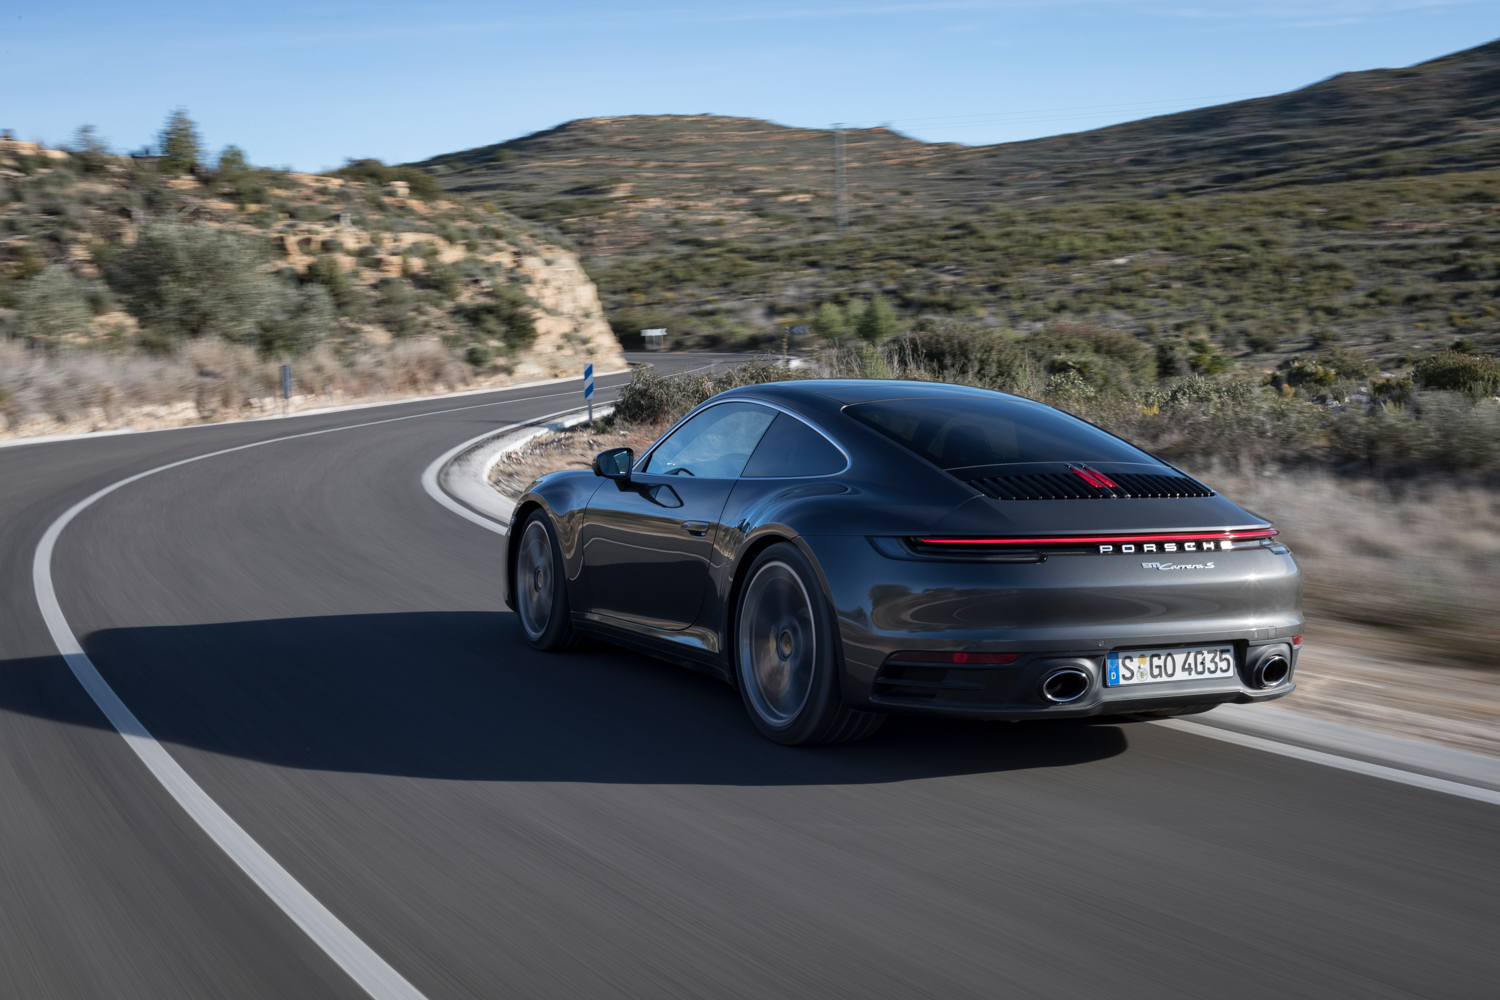 2020 Porsche 911 Carrera S 3/4 rear on road desert